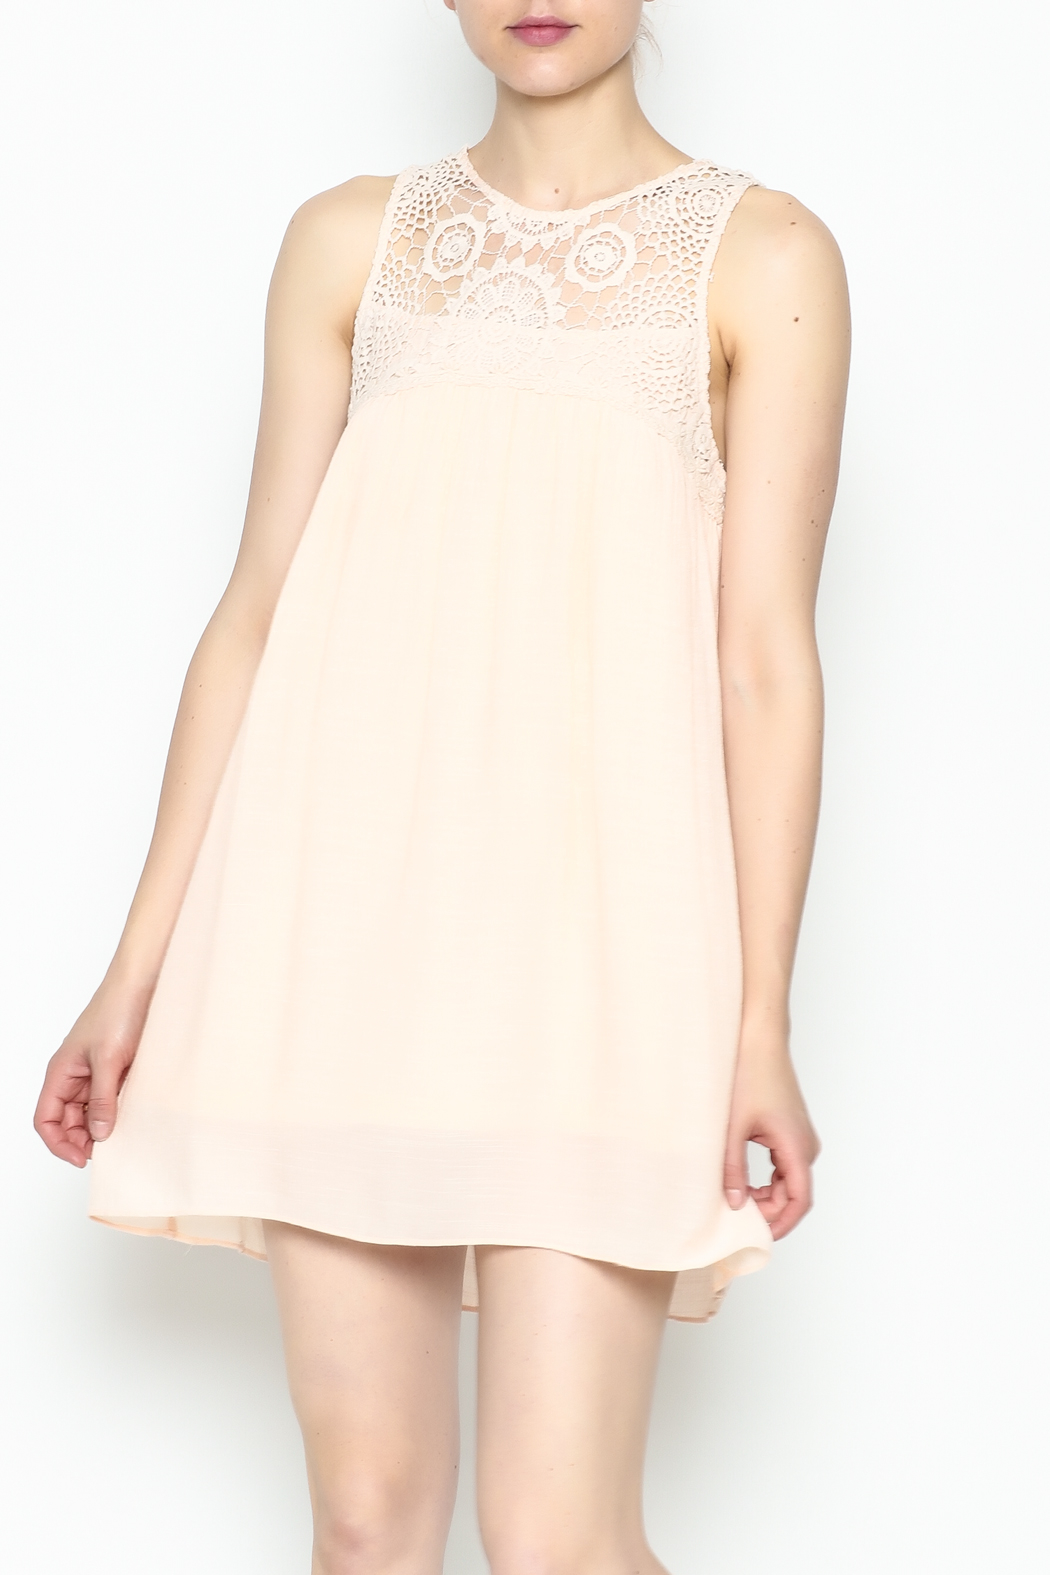 Poetry Lace Summer Dress - Main Image